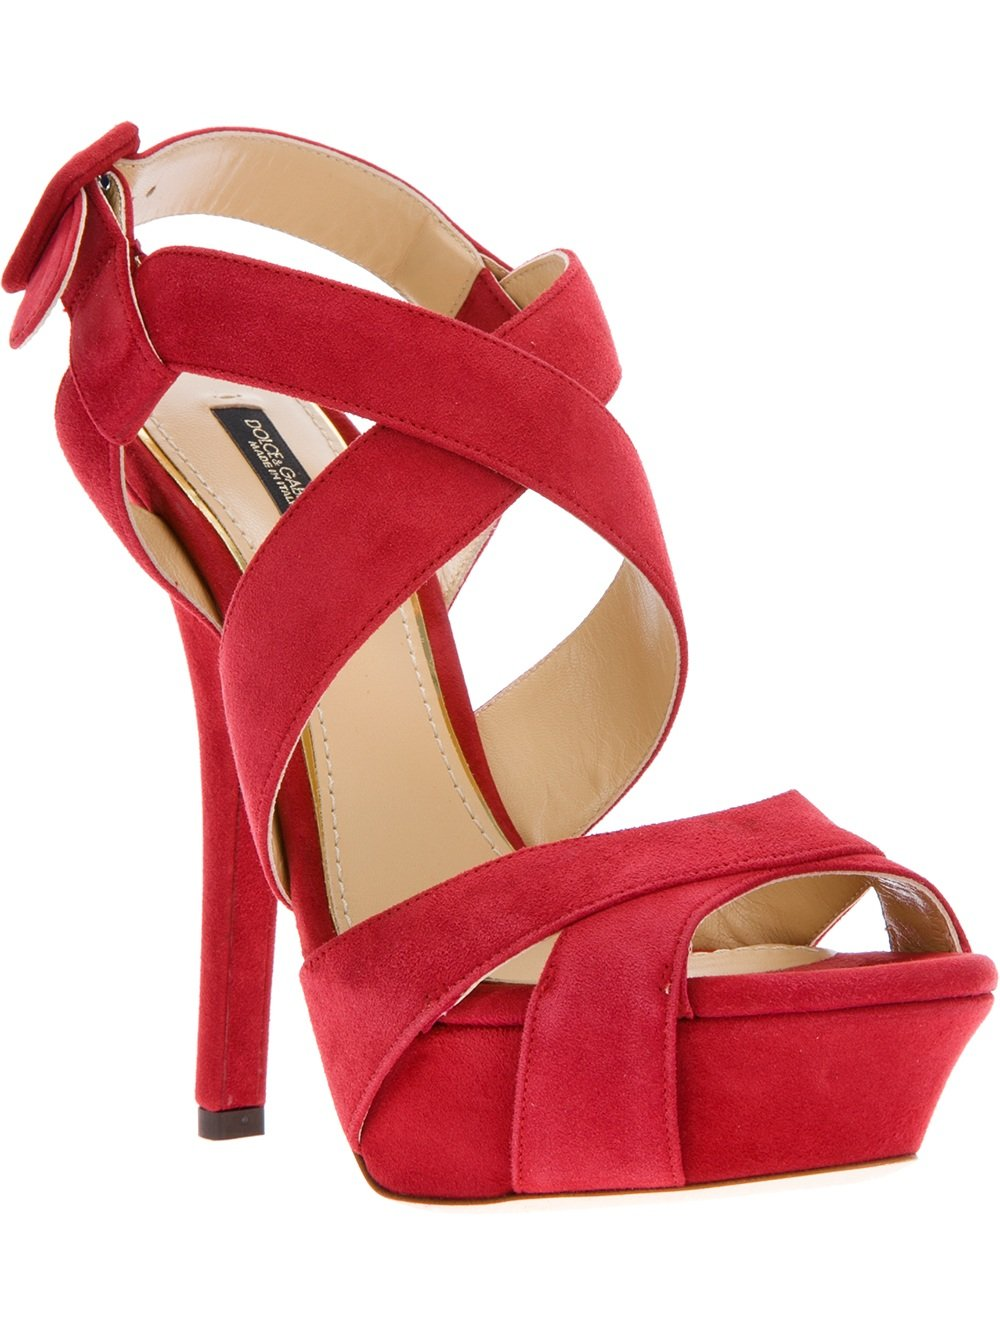 Dolce & gabbana Strappy Sandal in Red | Lyst